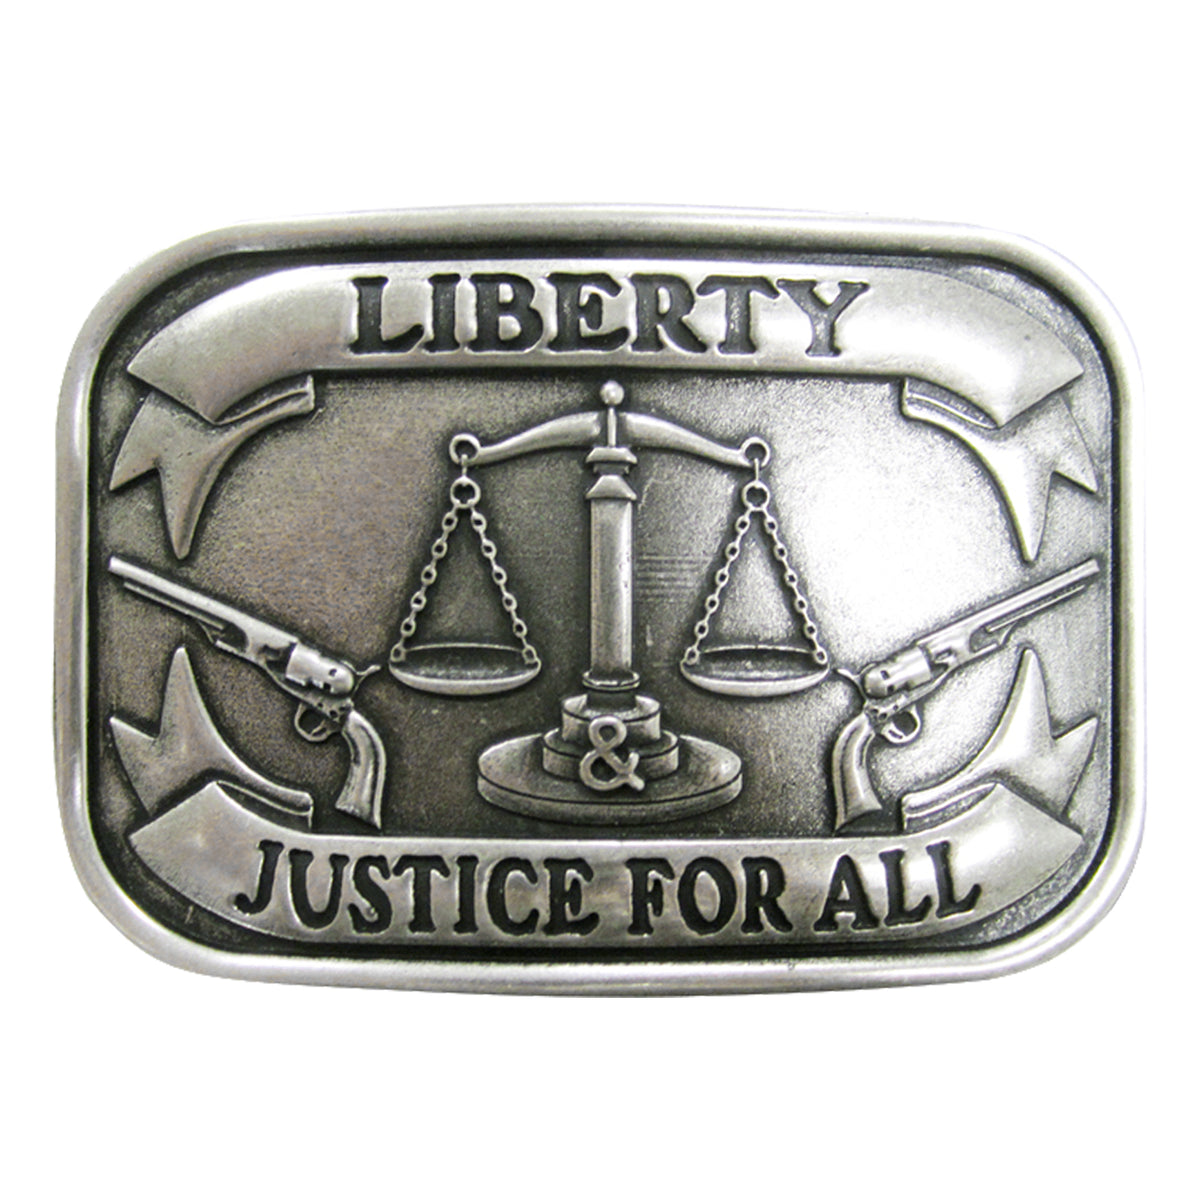 Liberty & Justice for All Buckle